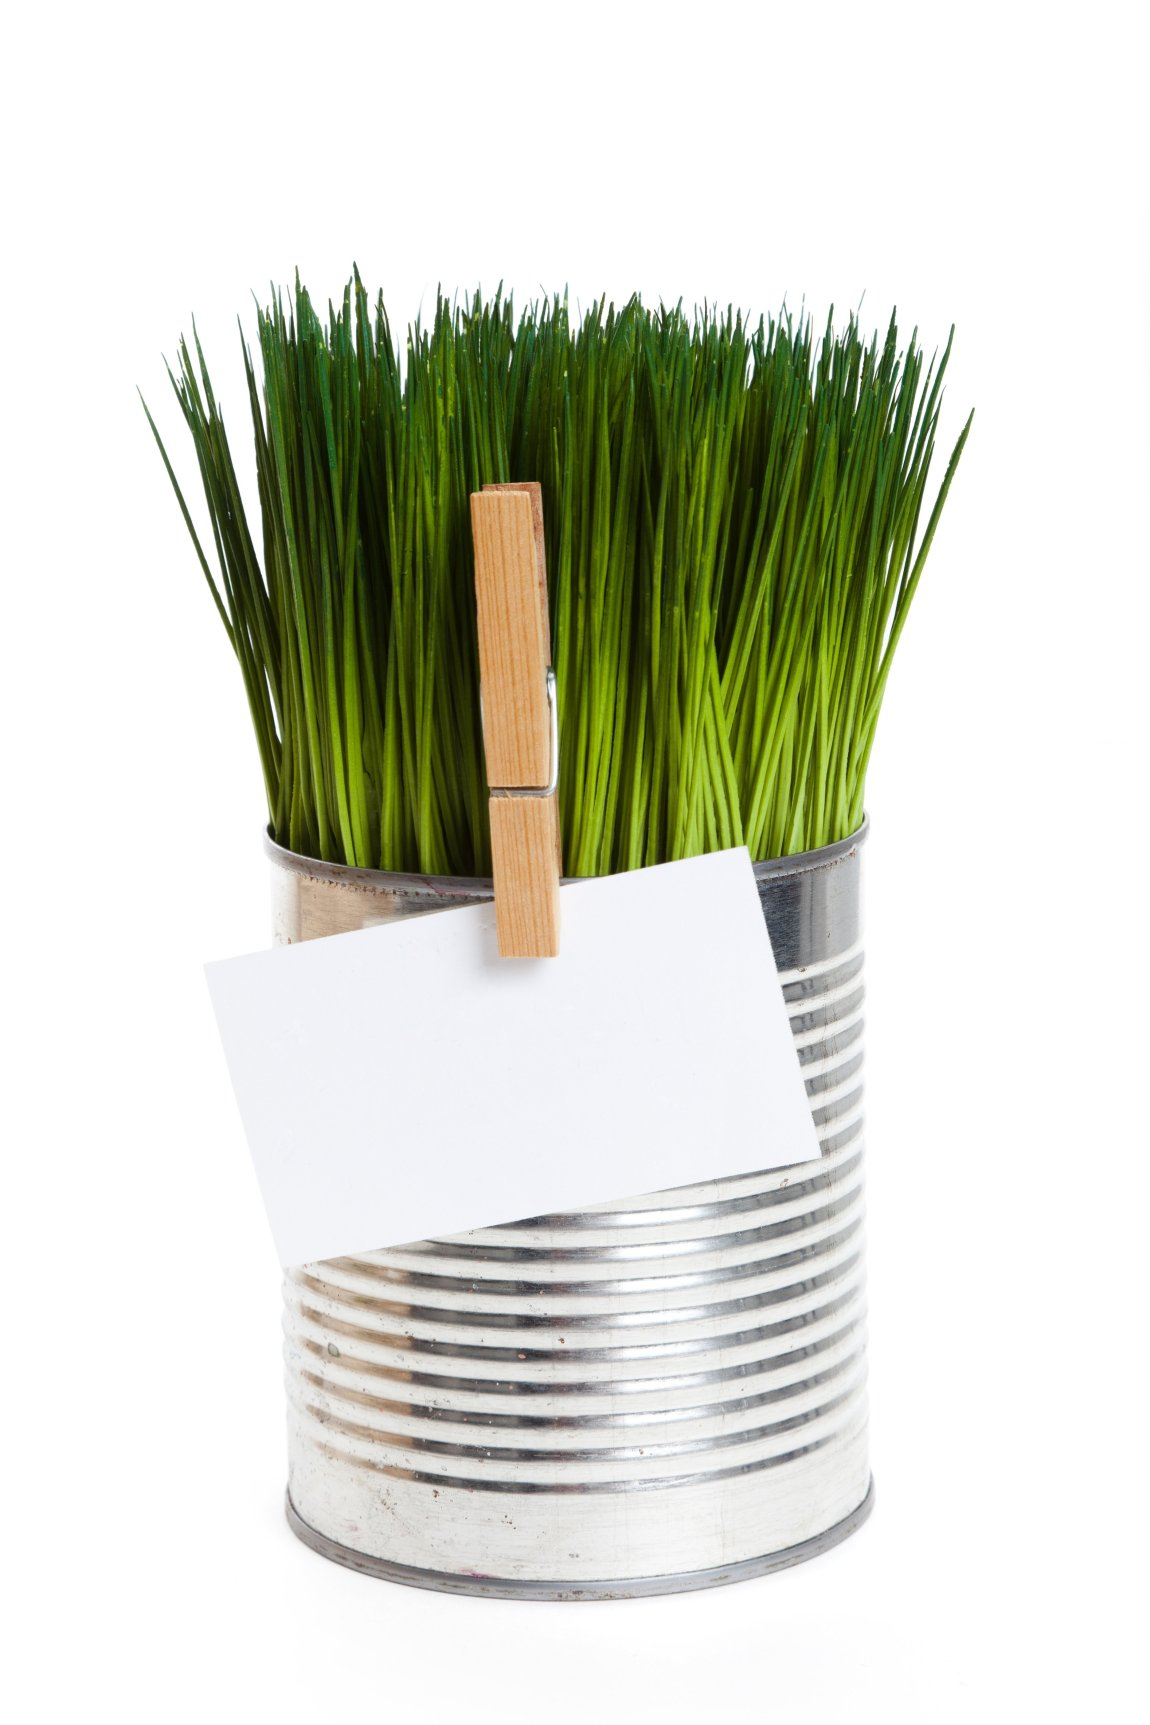 13184218 - green grass and metal can, concept of environmental conservation